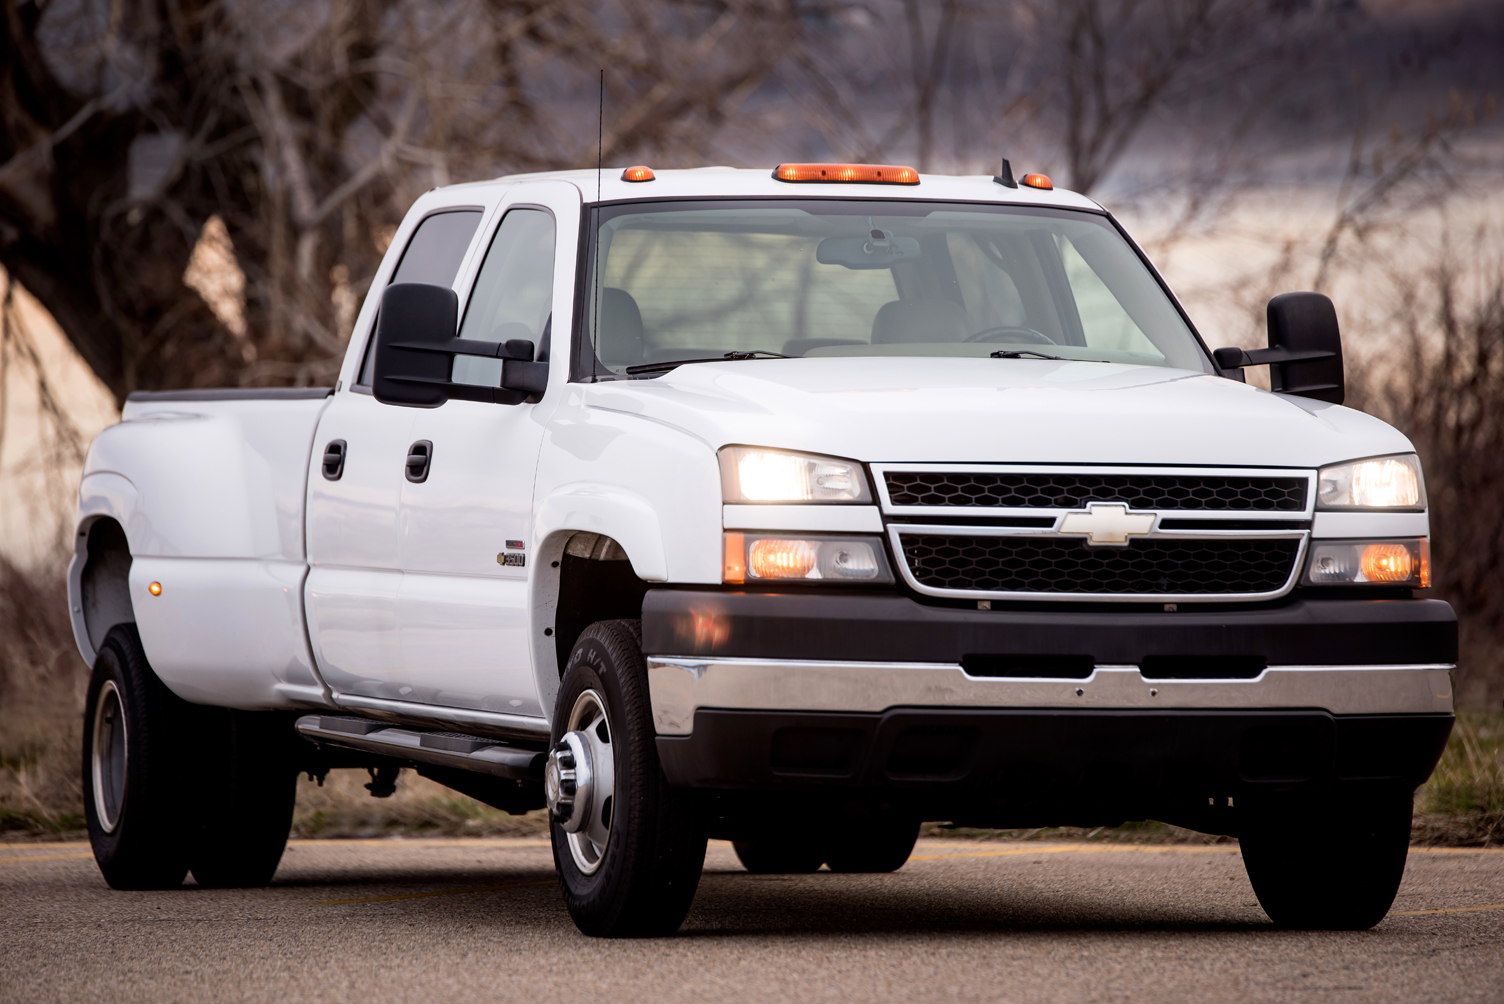 0492 _ 06 Chevy Silverado 3500 CcDually p30-2